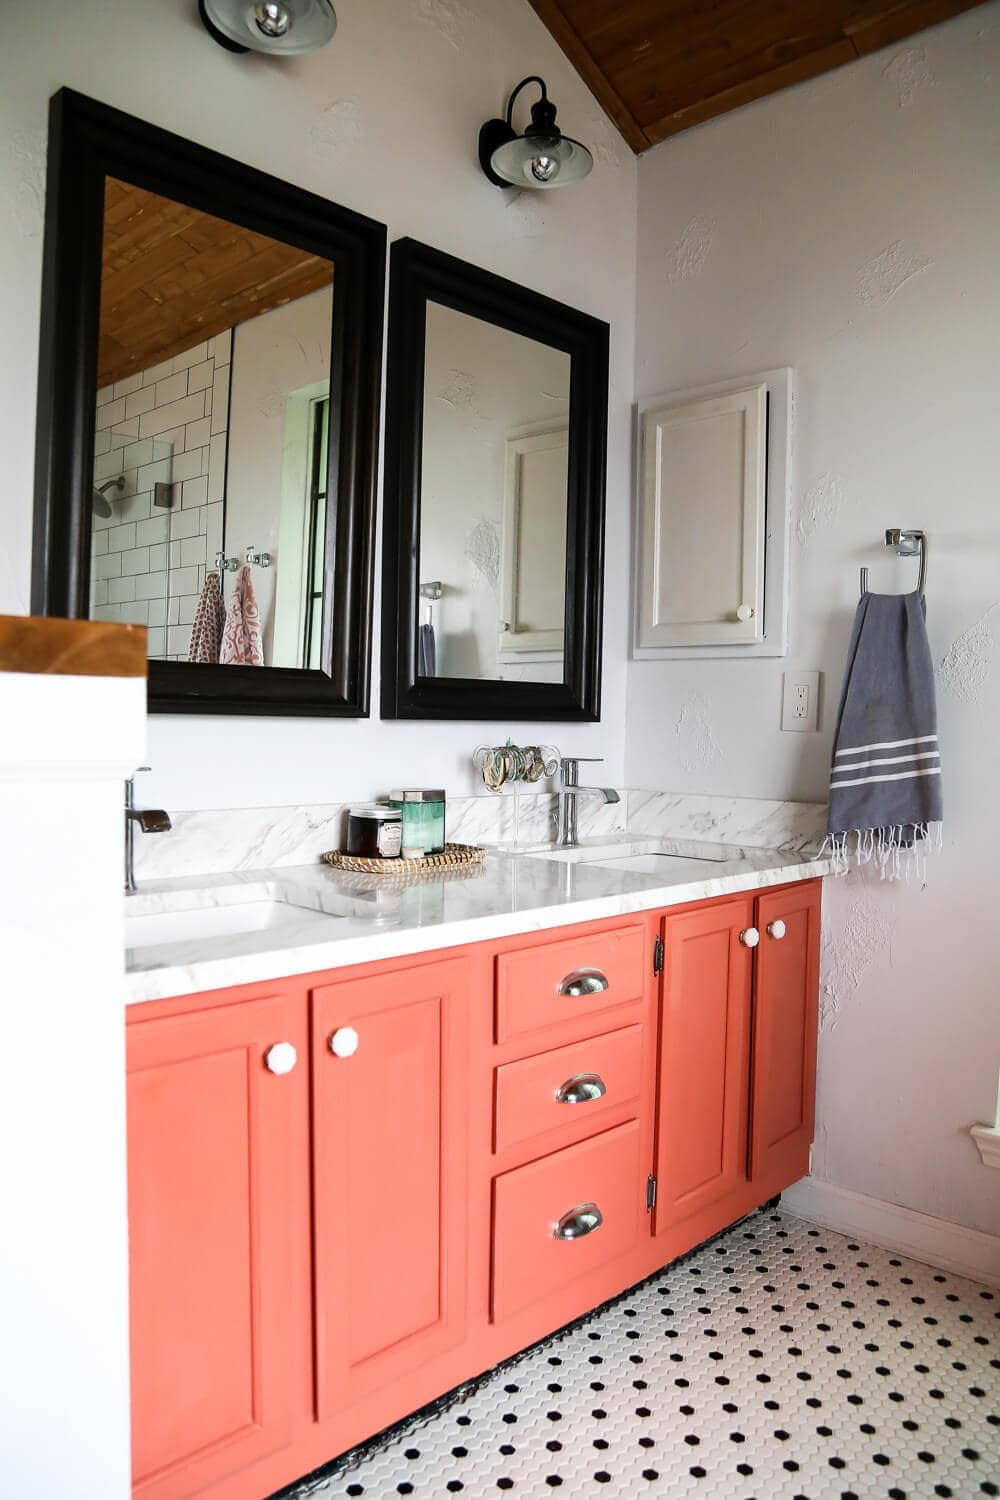 A master bathroom remodel with a coral vanity and black and white hex tile on the floor